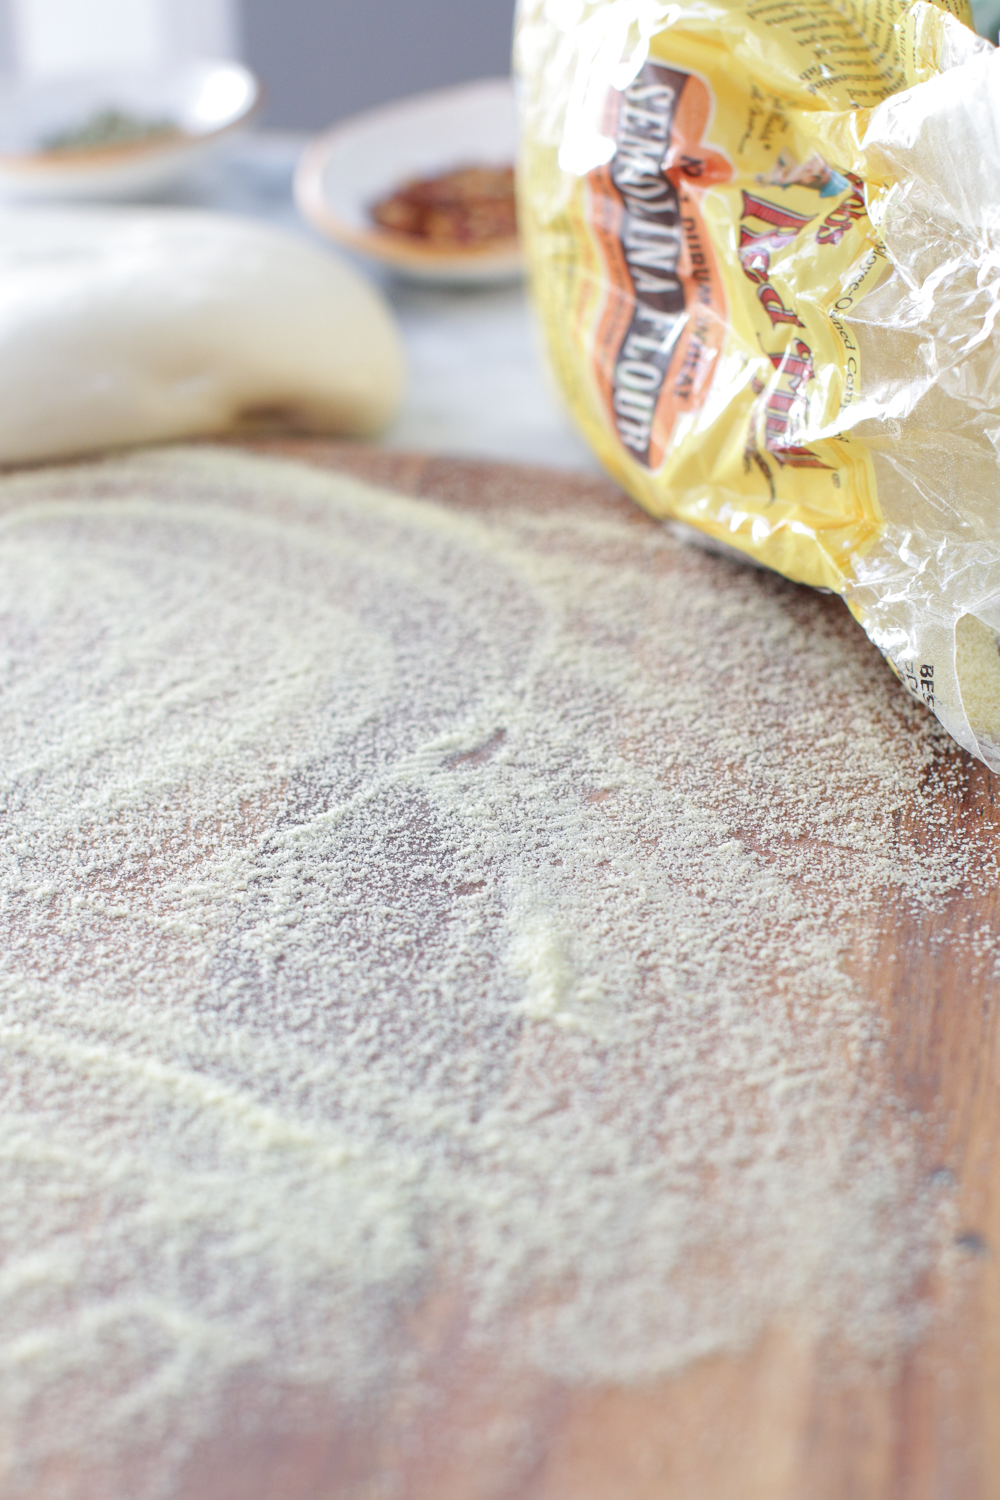 A sprinkle of Semolina Flour from Bob's Red Mill will keep the pizza dough from sticking to the peel by working like a set of ball bearings when transferring the dough to the steel.